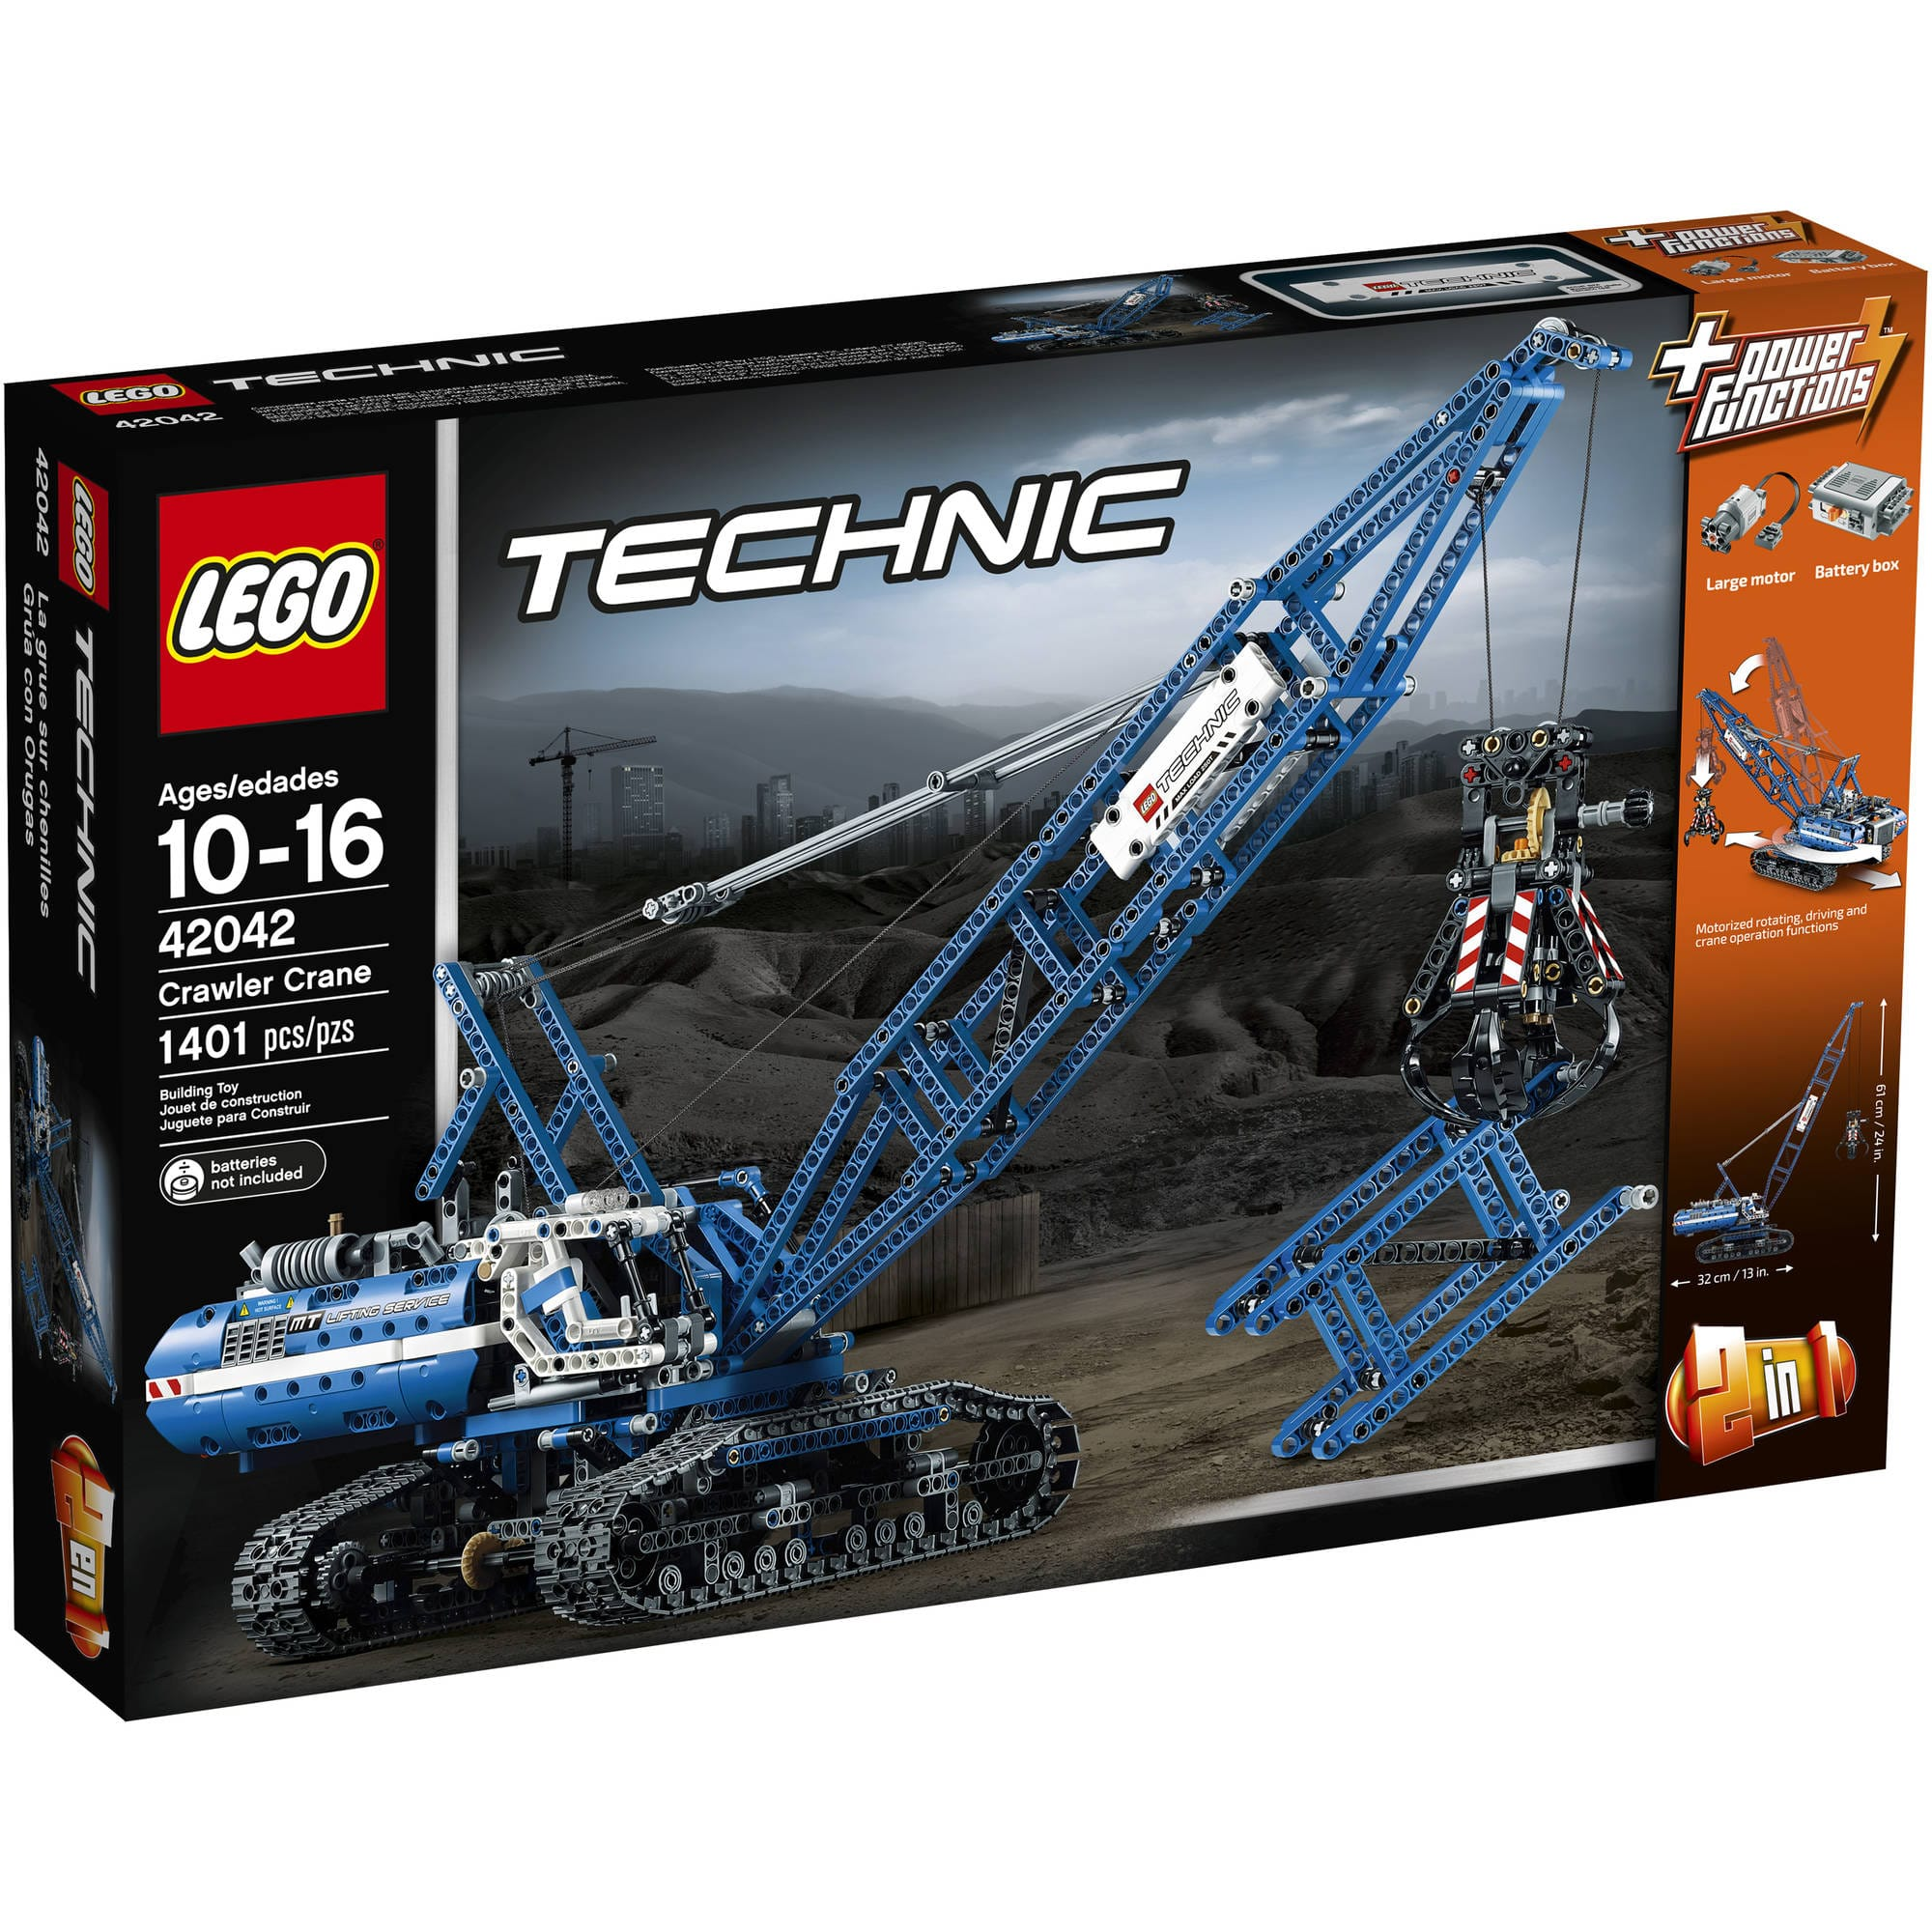 Lego Technic 42042 Crawler Crane for $113.45 Amazon